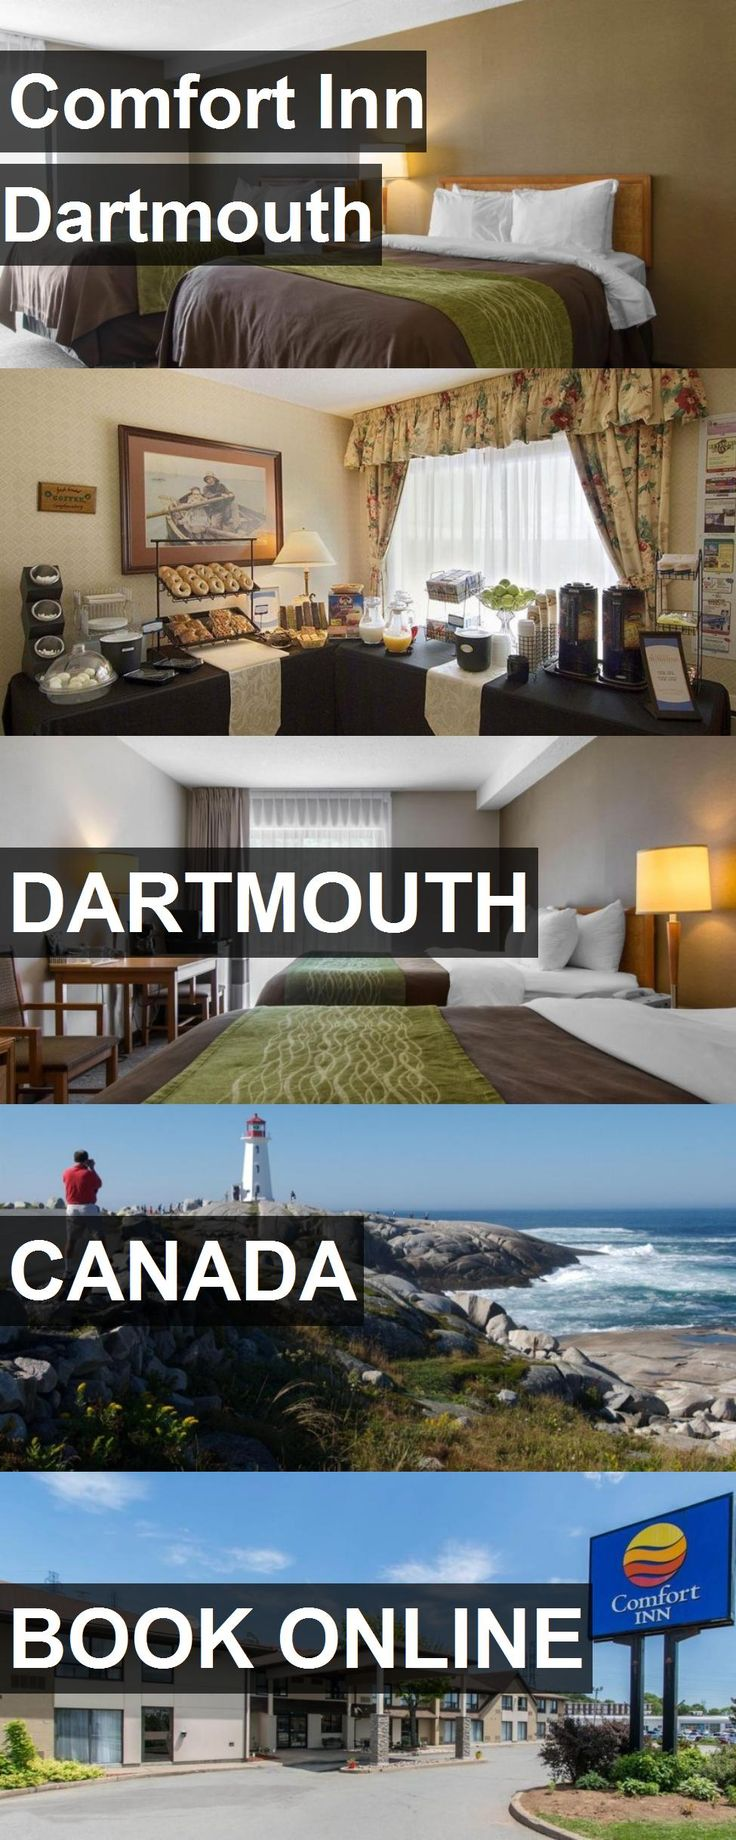 Hotel Comfort Inn Dartmouth in Dartmouth, Canada. For more information, photos, reviews and best prices please follow the link. #Canada #Dartmouth #ComfortInnDartmouth #hotel #travel #vacation